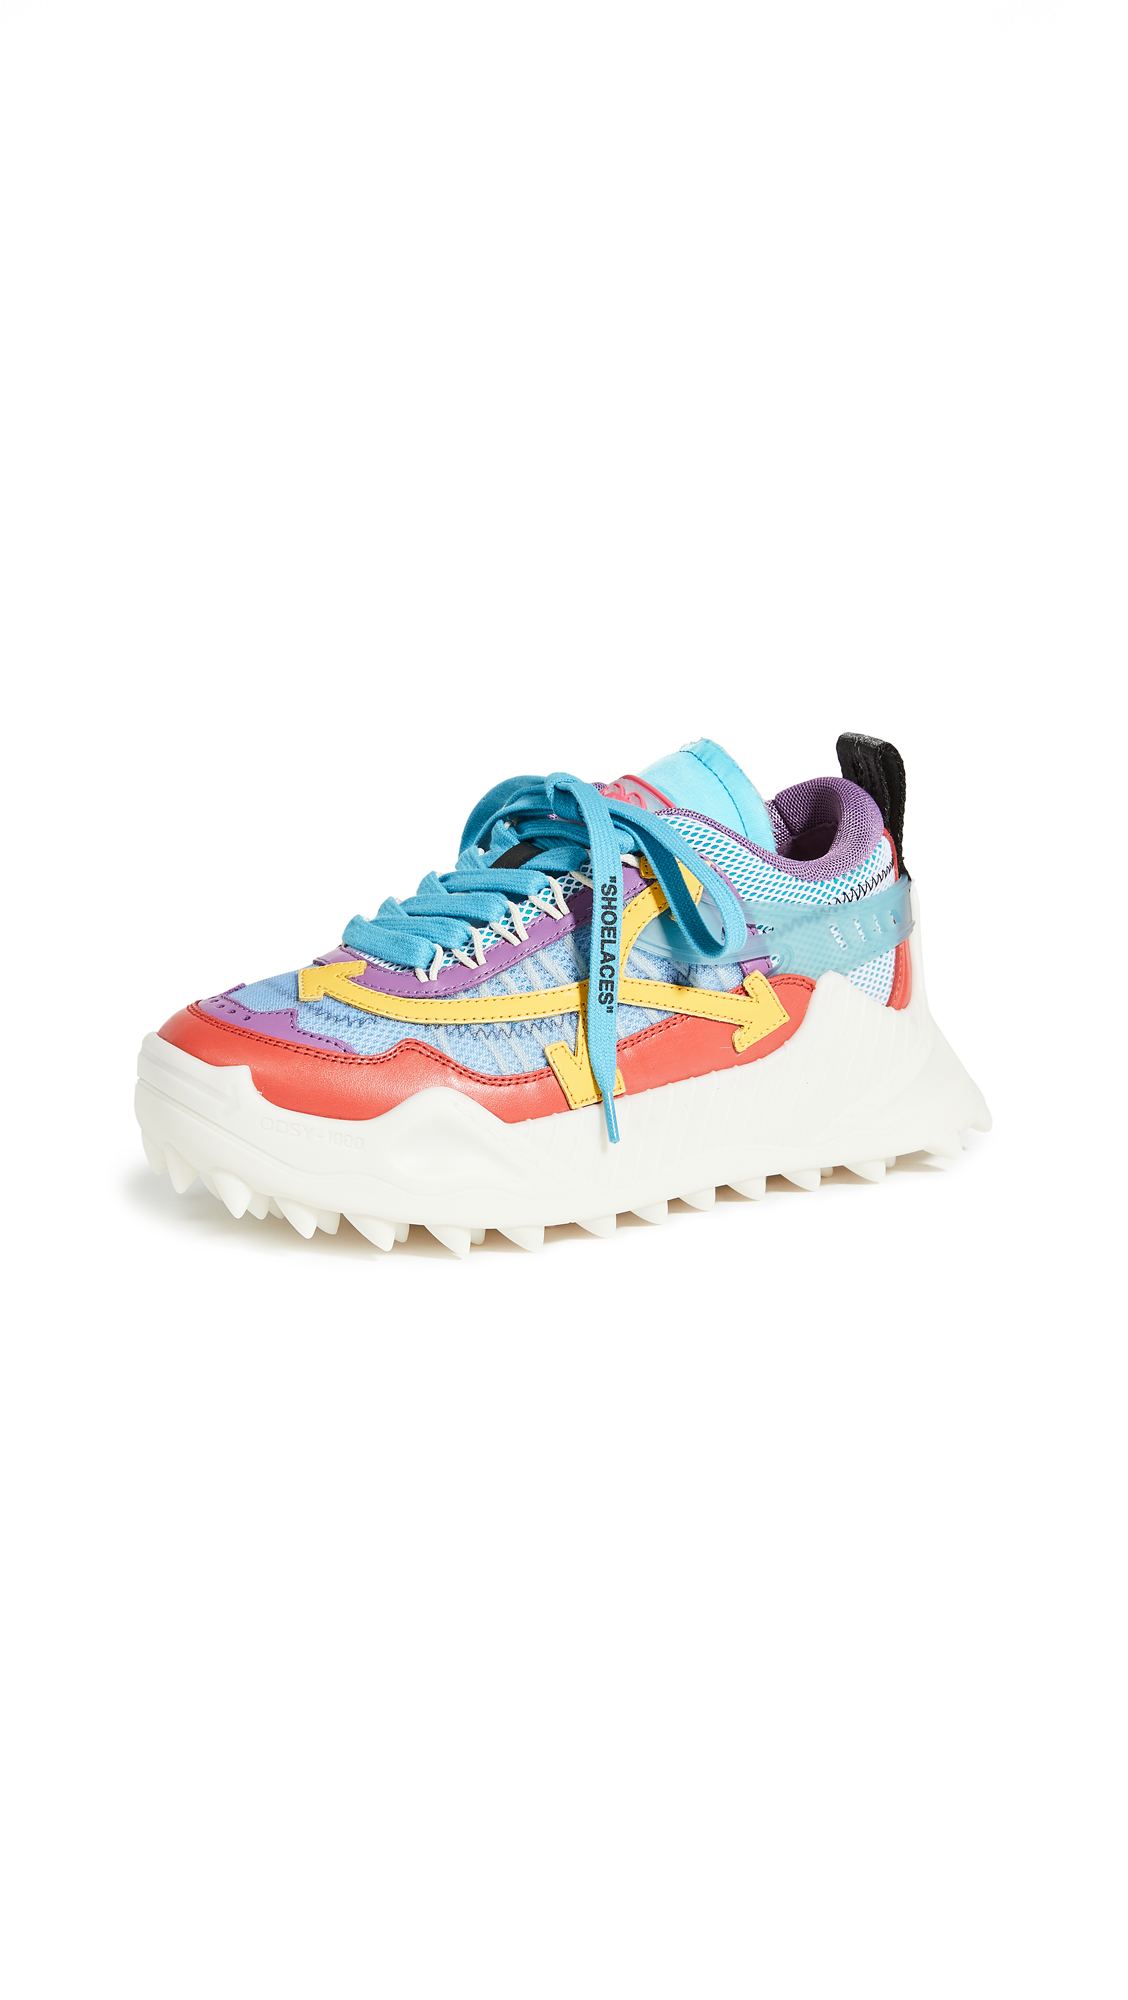 Off-White Odsay 1000 Sneakers - 40% Off Sale